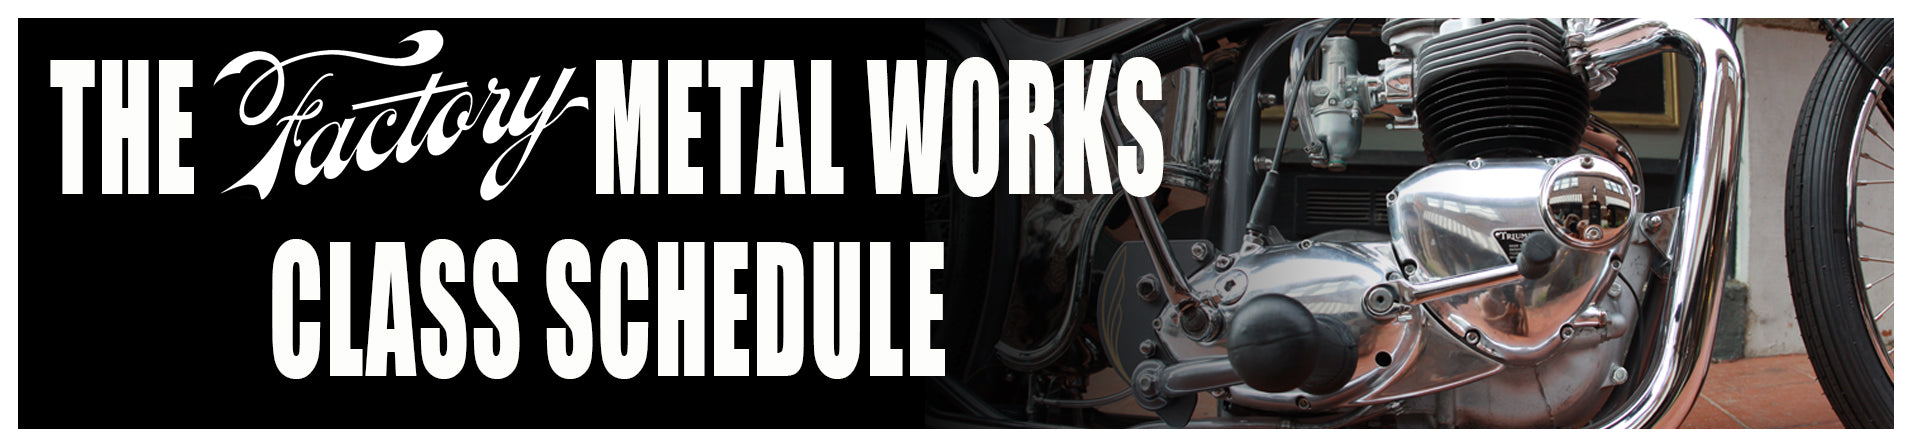 The Factory Metal Works Class Schedule